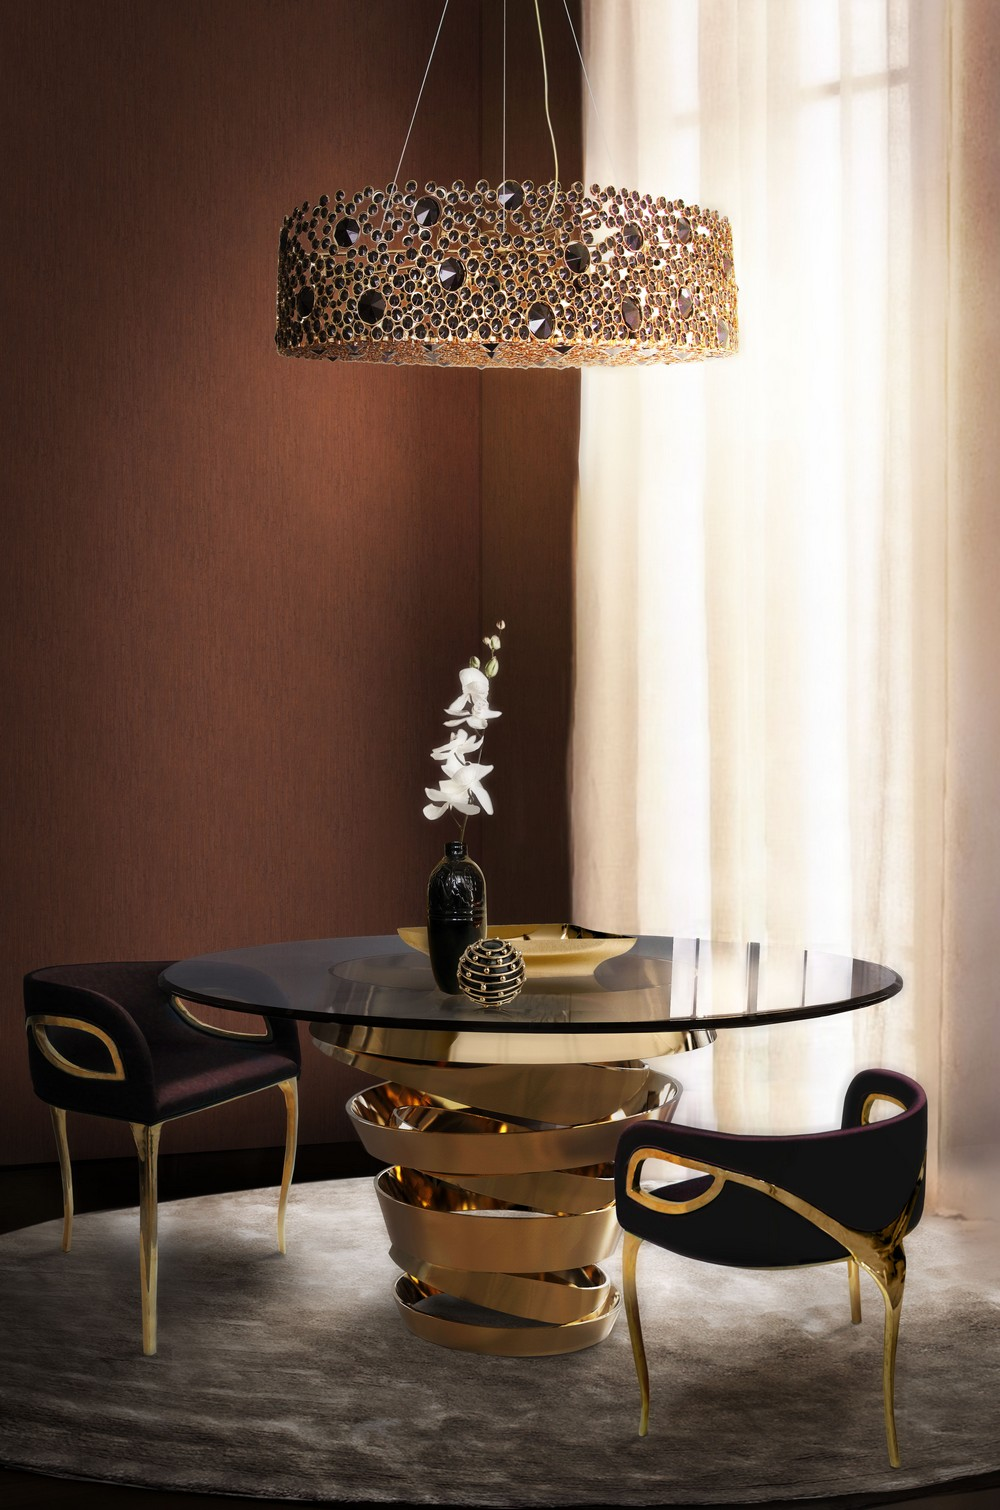 KOKET dining room  dining room How to Use Black Color to Create an Incredible Dining Room How to Use Black Color to Create an Incredible Dining Room4